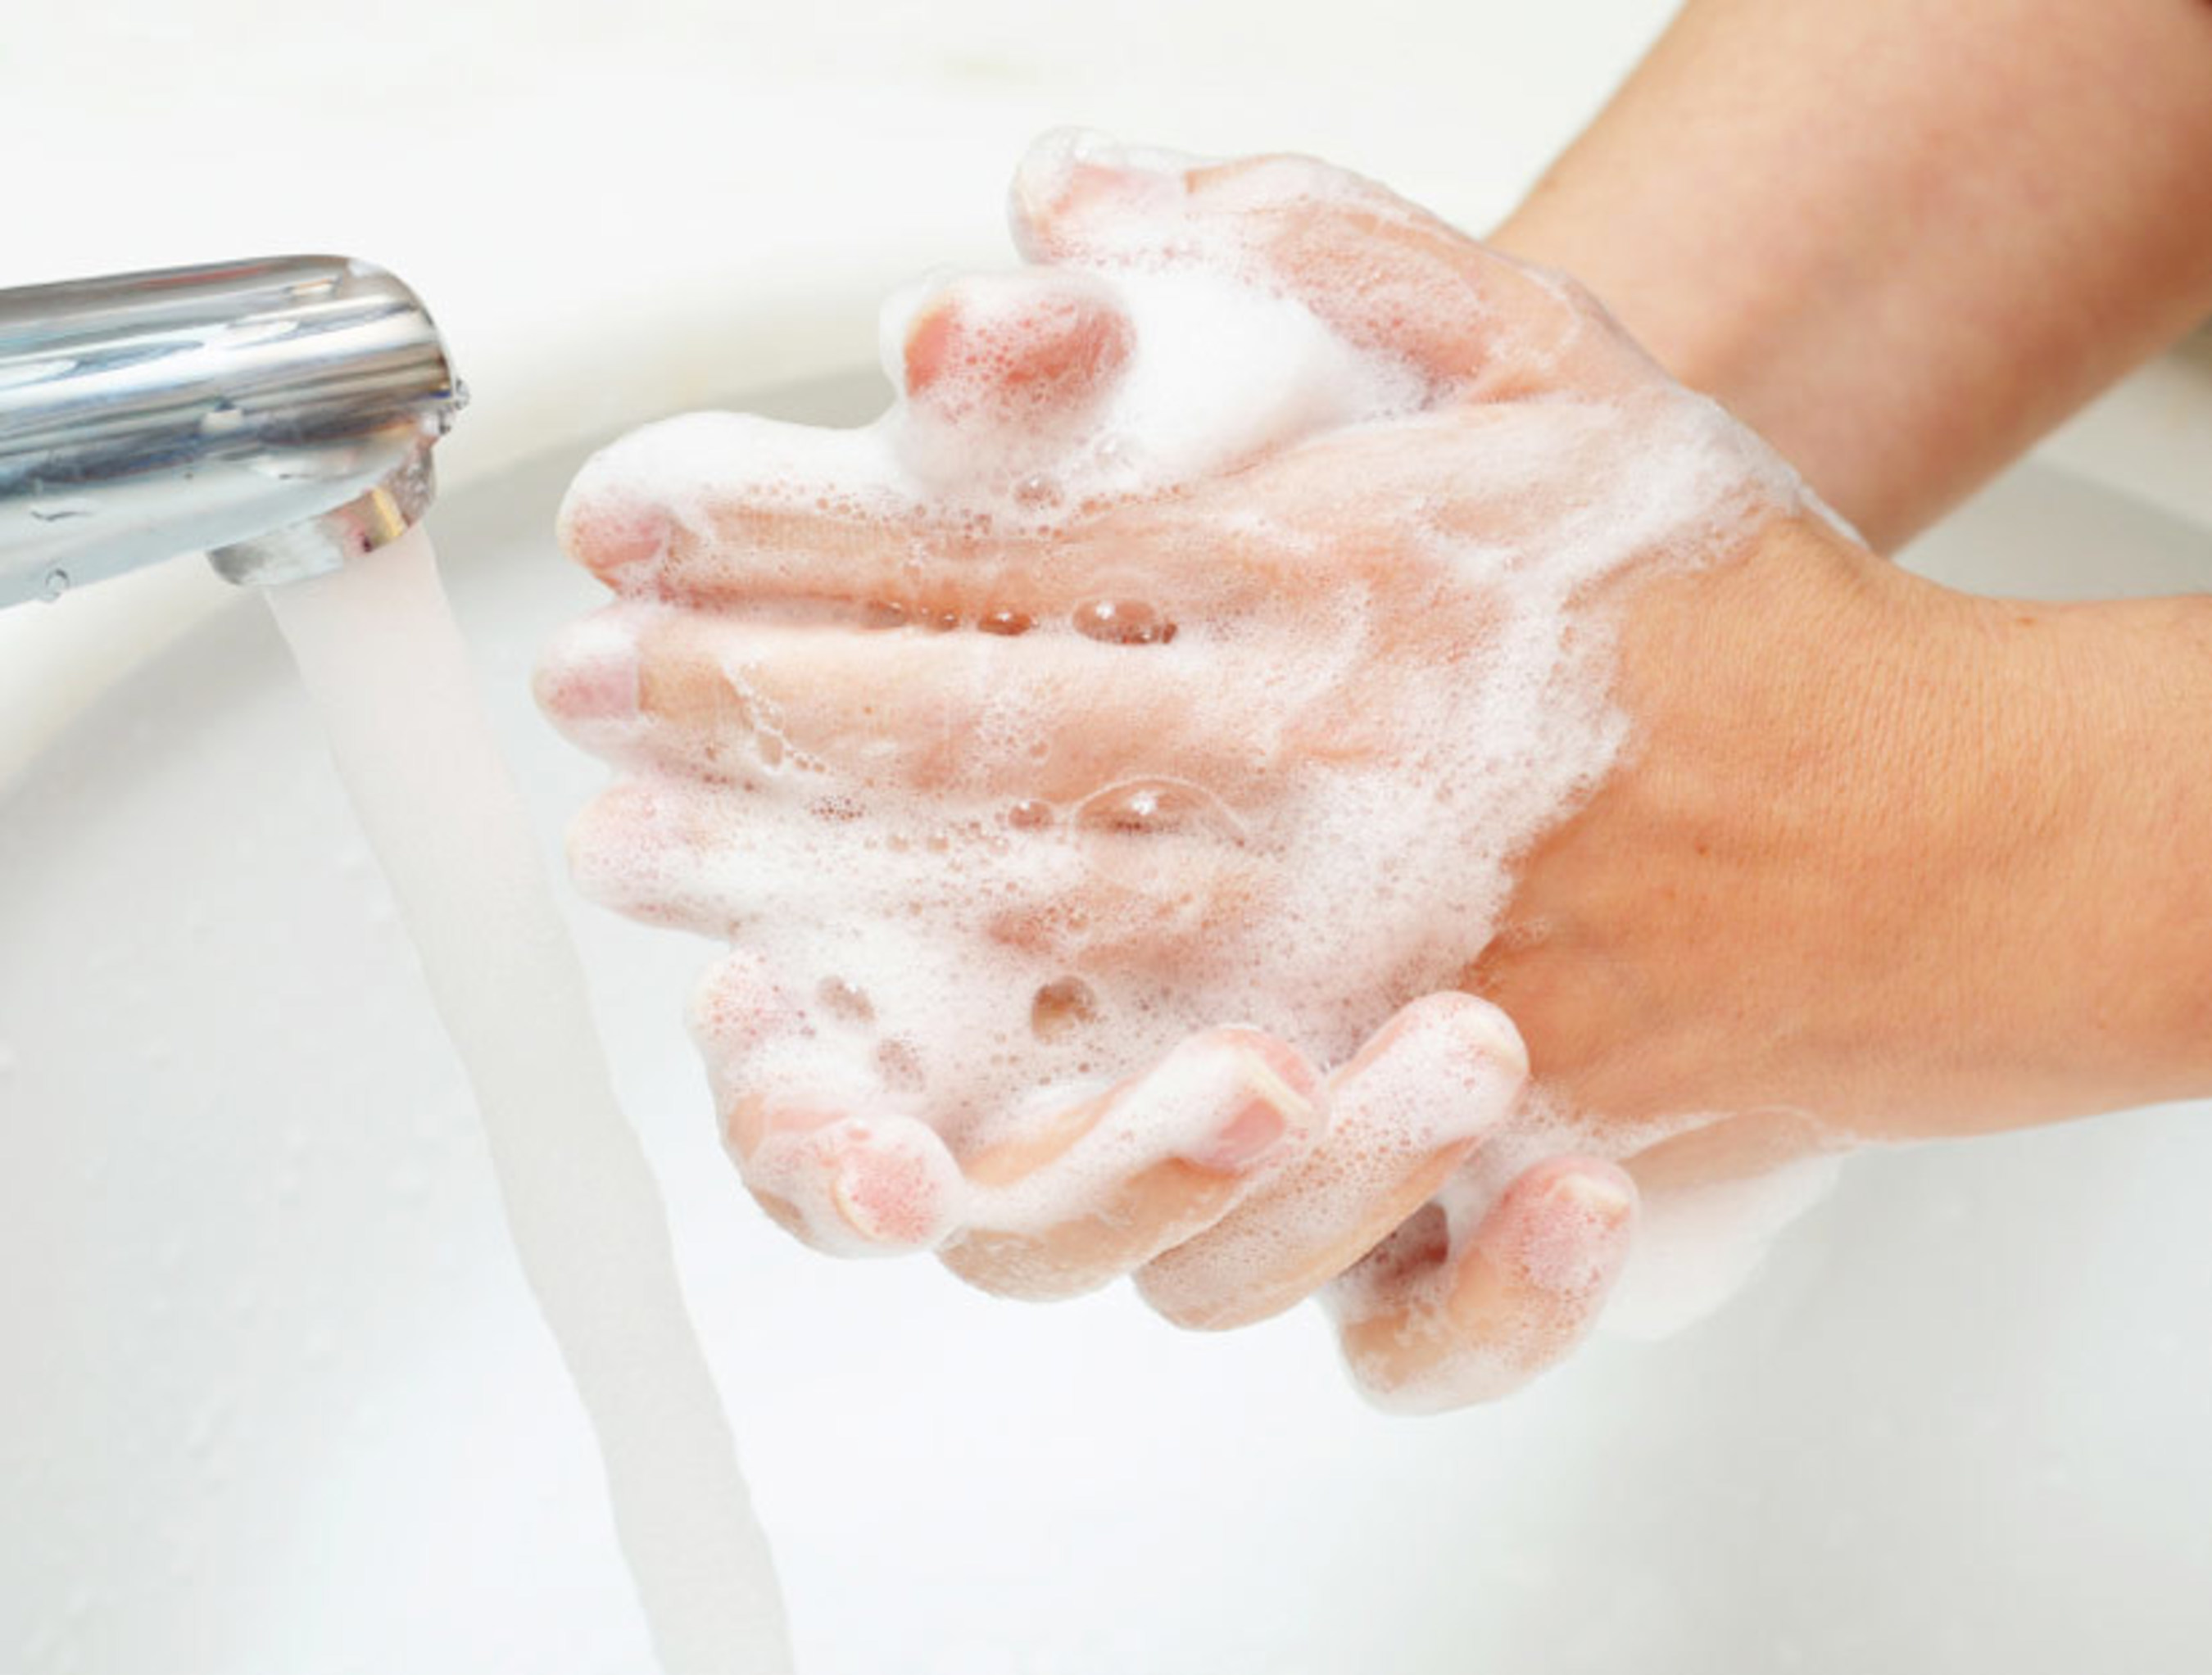 Bradley Corporation conducts an annual Healthy Hand Washing survey to keep its pulse on Americans' hand washing habits in public restrooms.